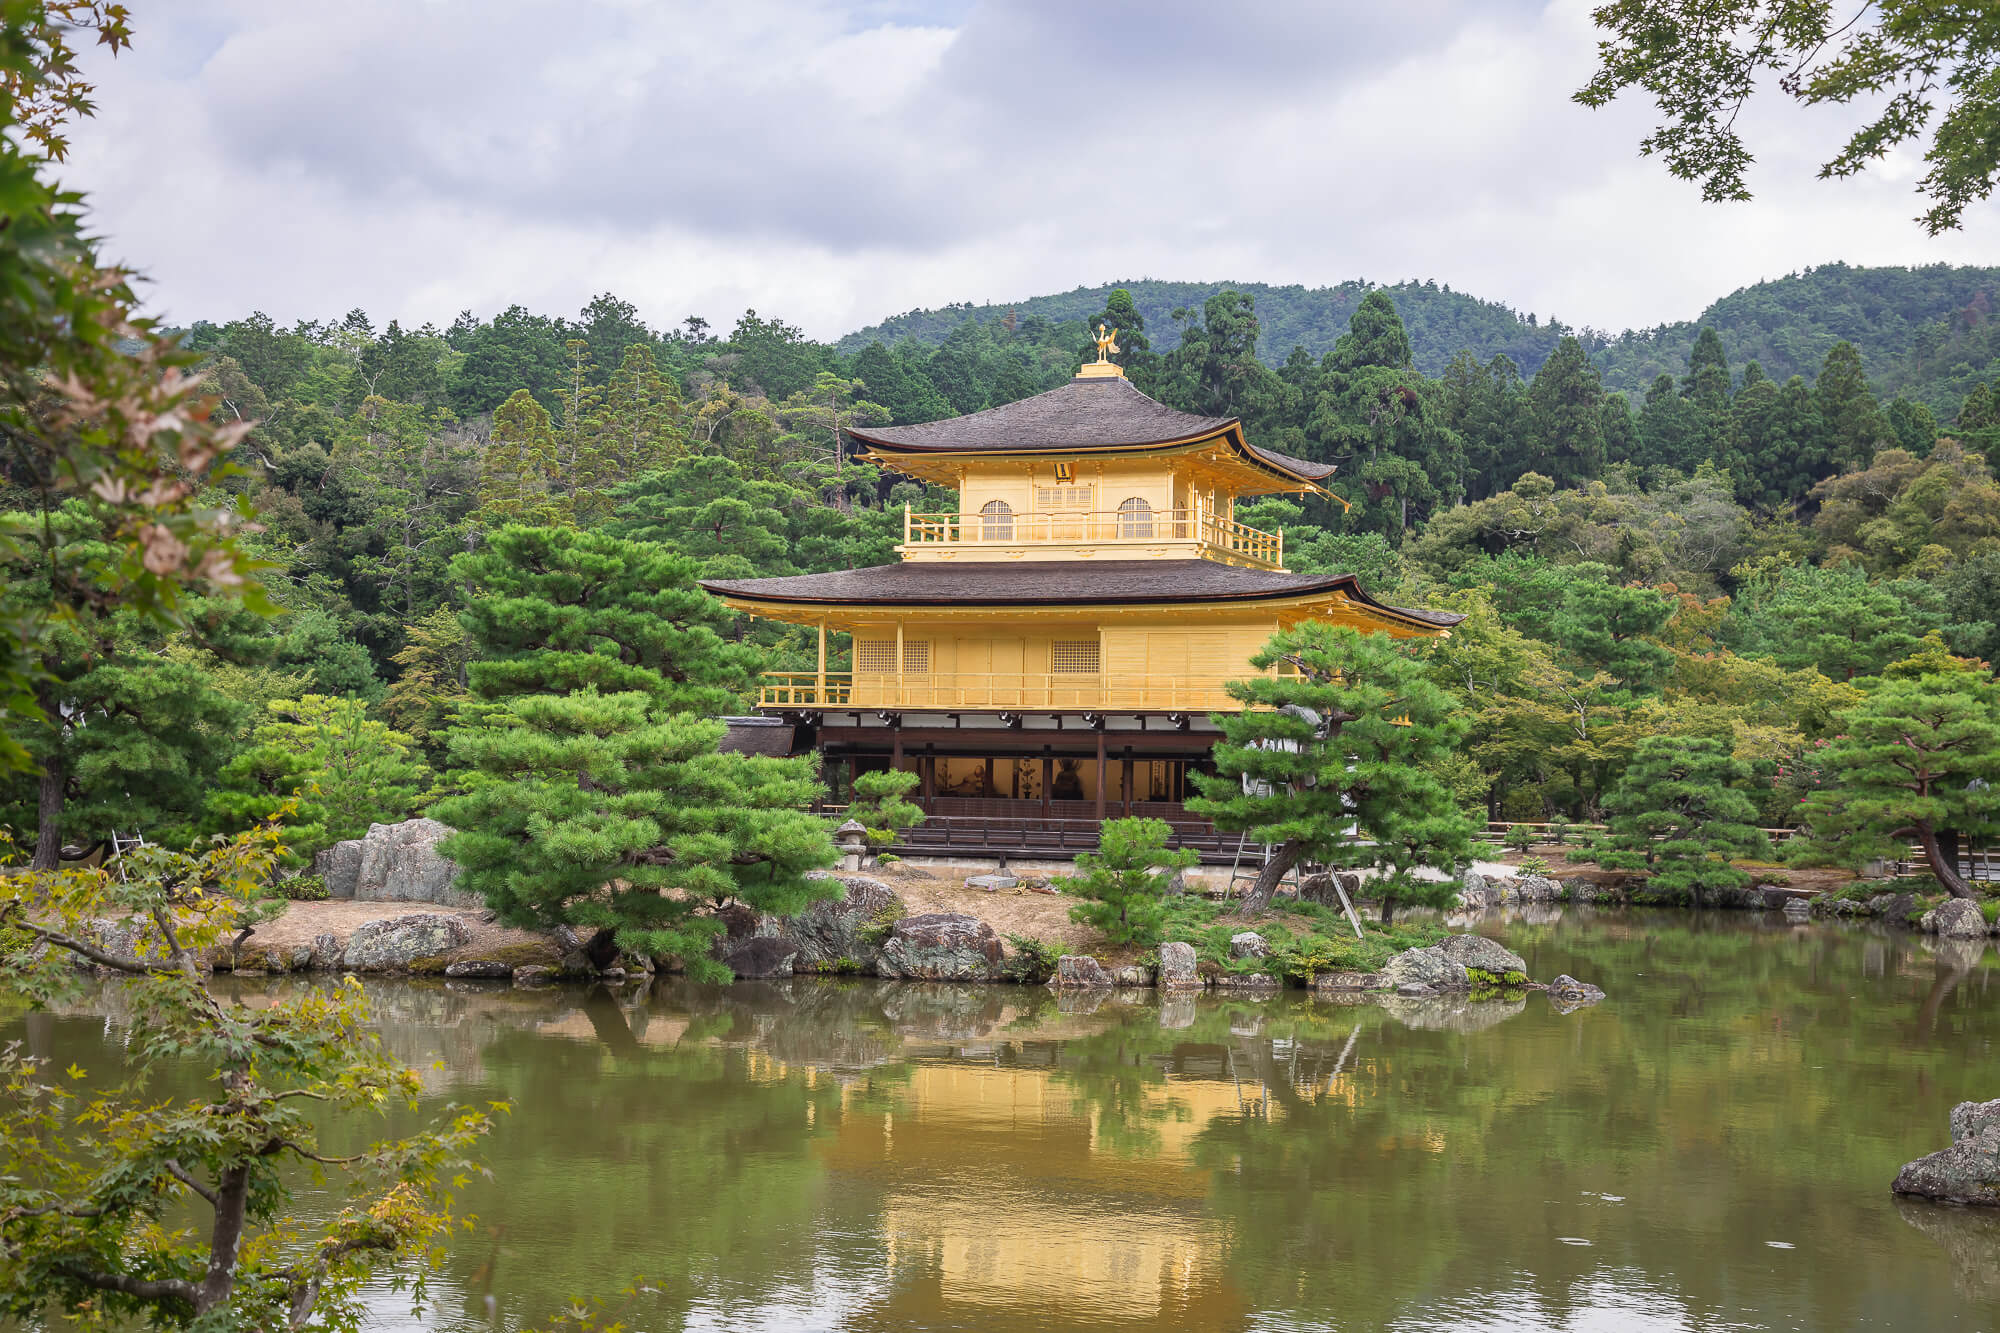 Japan Travel: 4 Day Kyoto Itinerary for Lodging, Dining & Activities